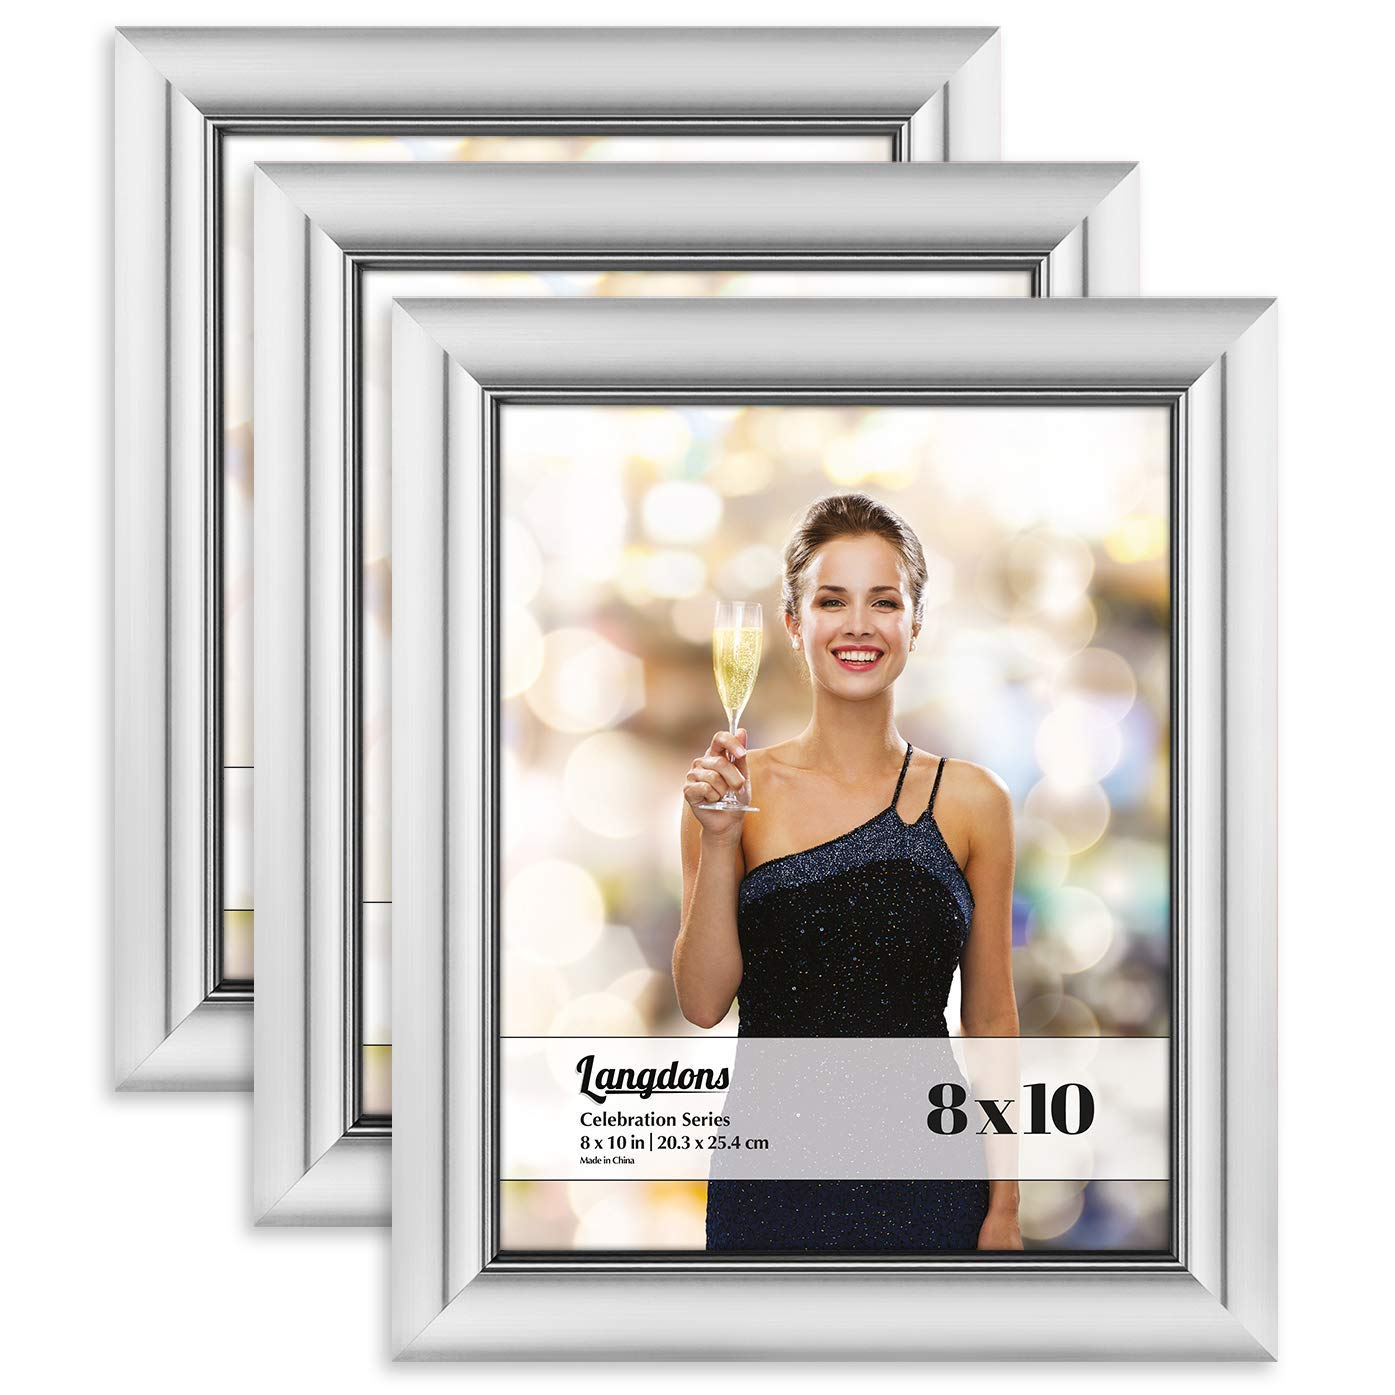 Langdons 8x10 Picture Frame Set (3 Pack, Silver Picture Frames) Photo Frame 8x10, Wall Hang or Table Top Display, 8 x 10 Frame - Silver Frames, Celebration Series